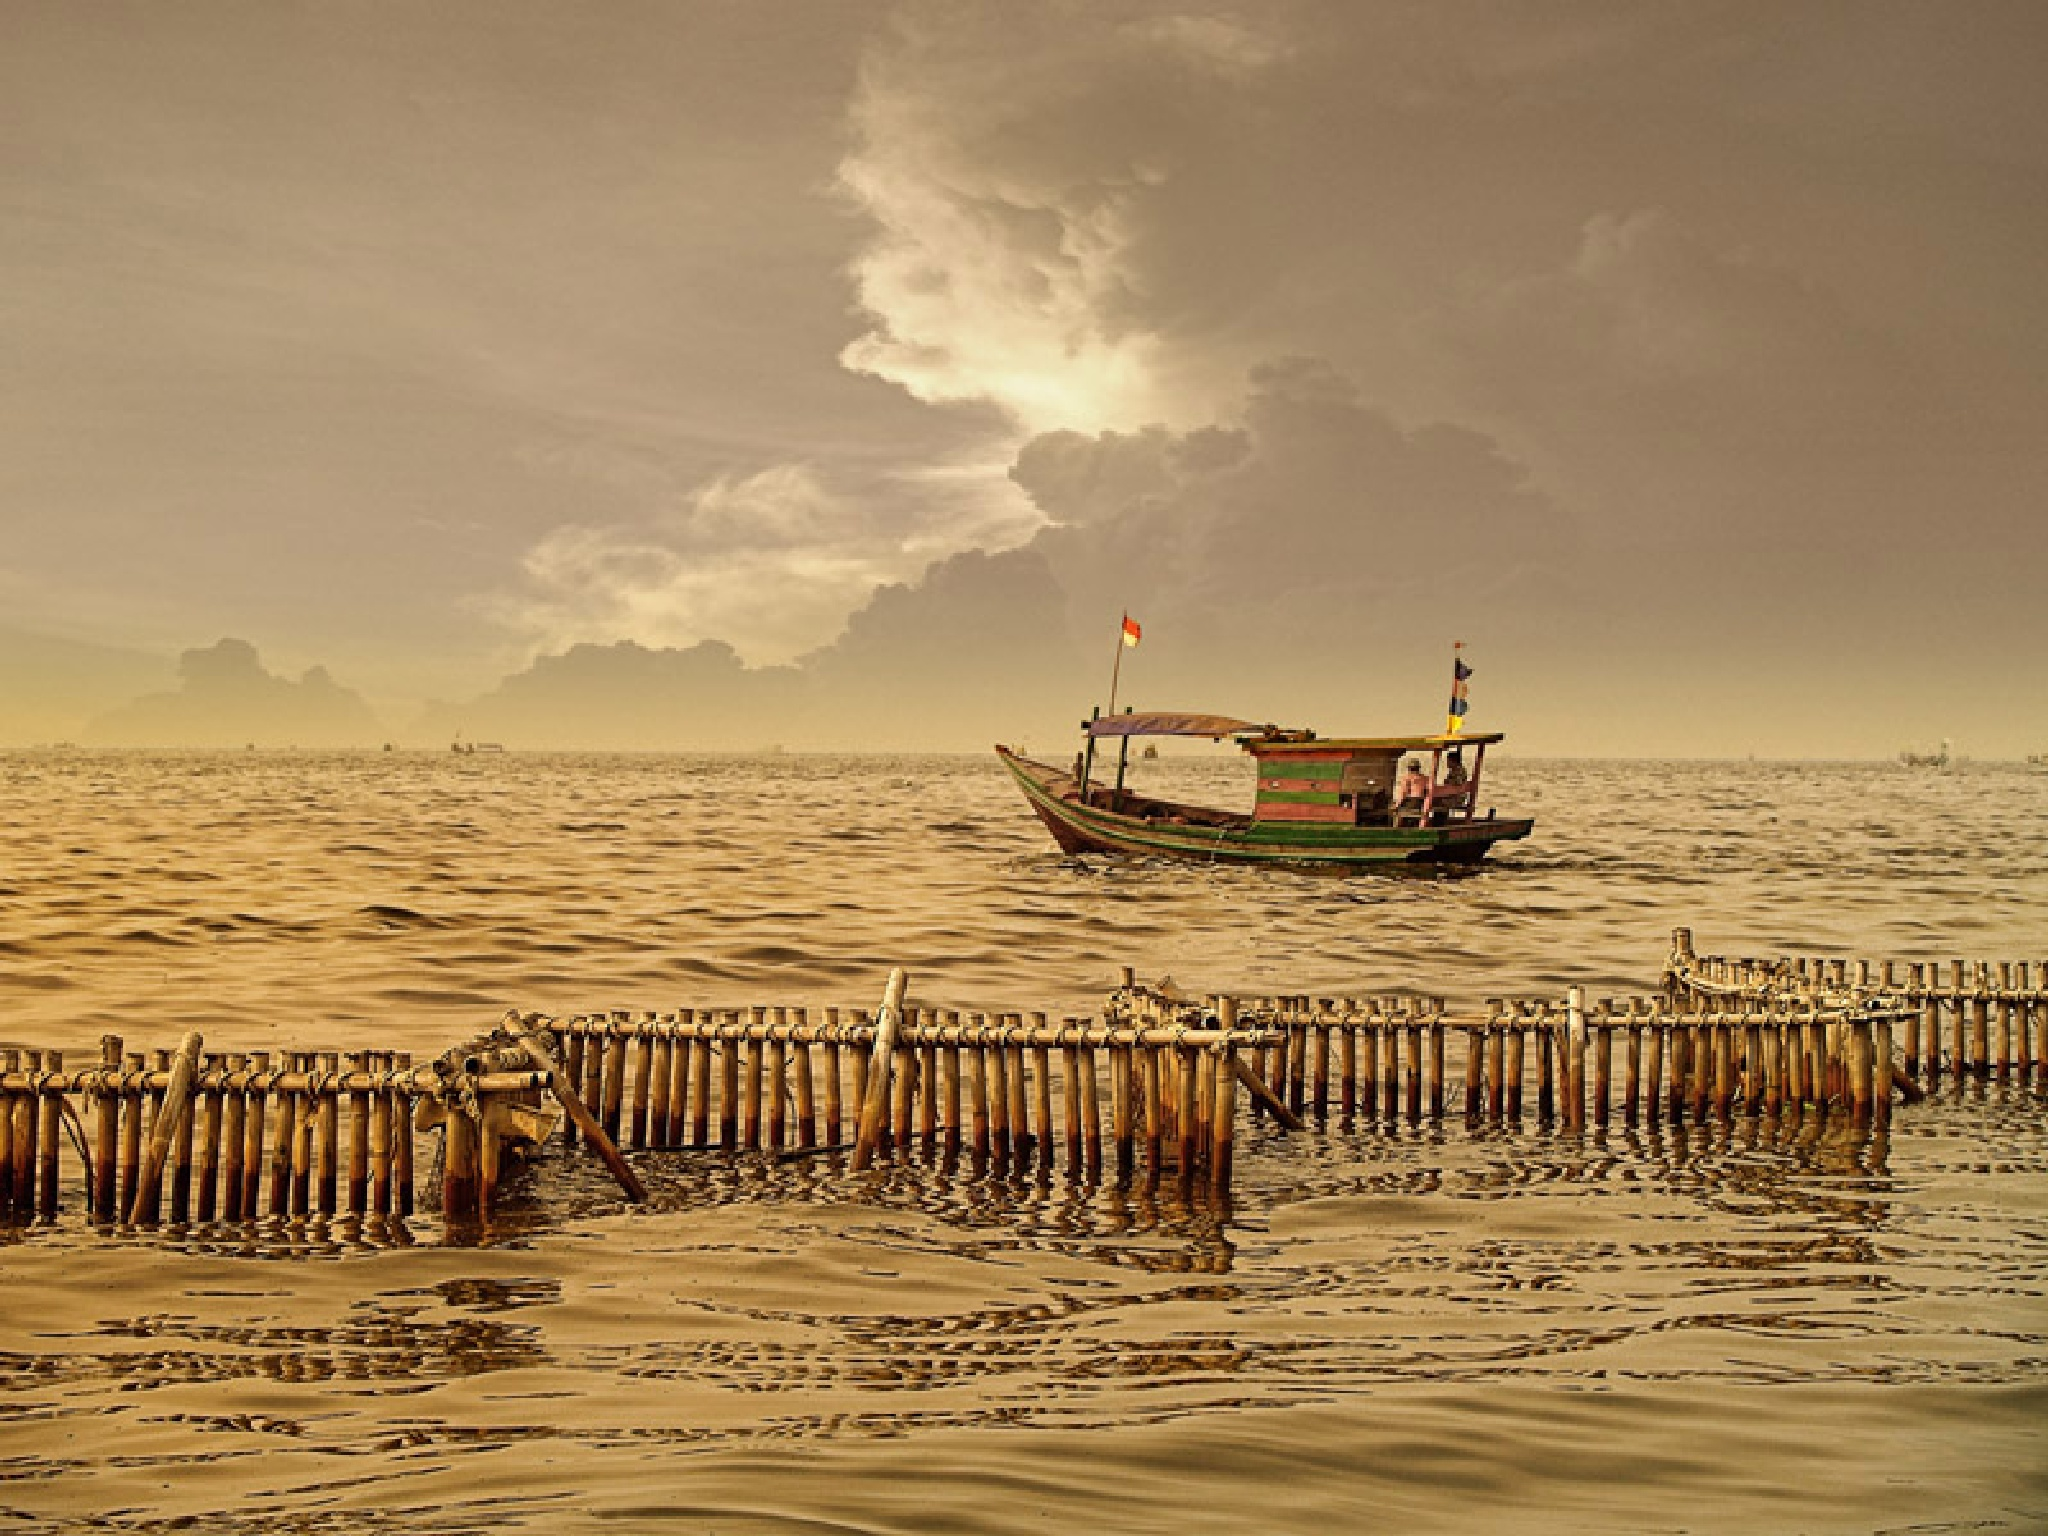 gold sea at dusk by Sonny Soleman